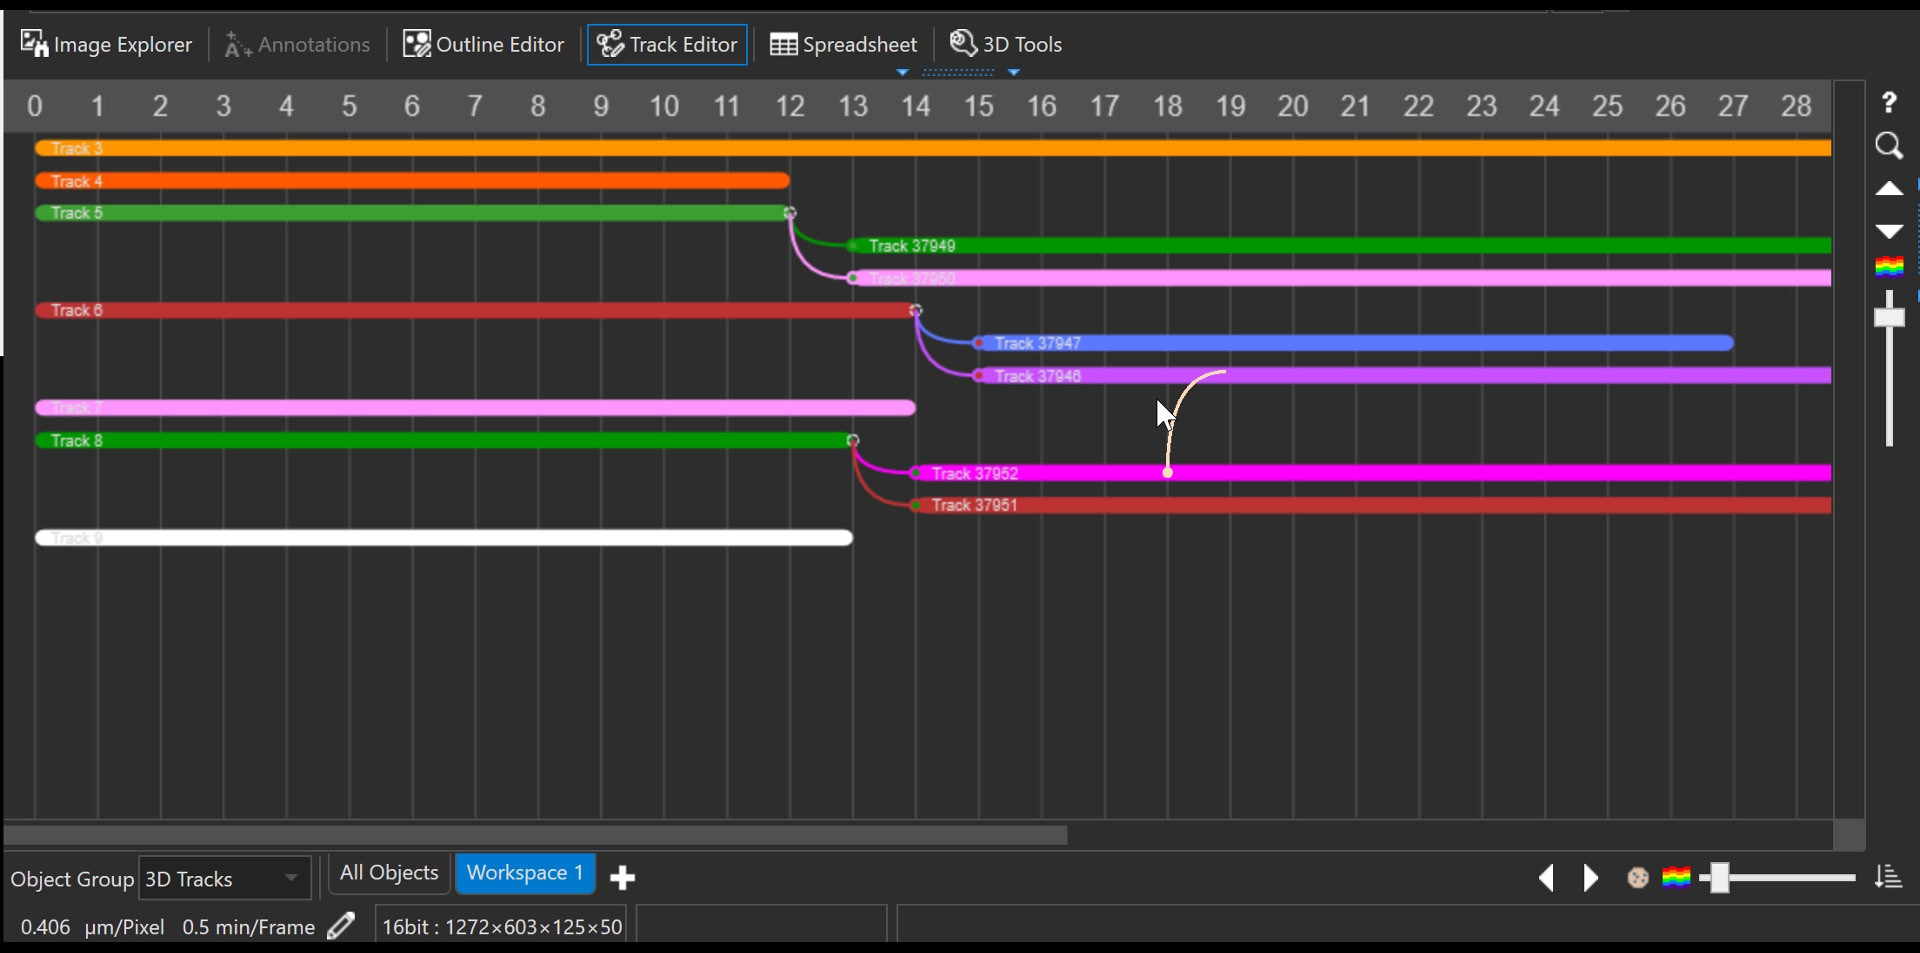 Track and Lineage Editing